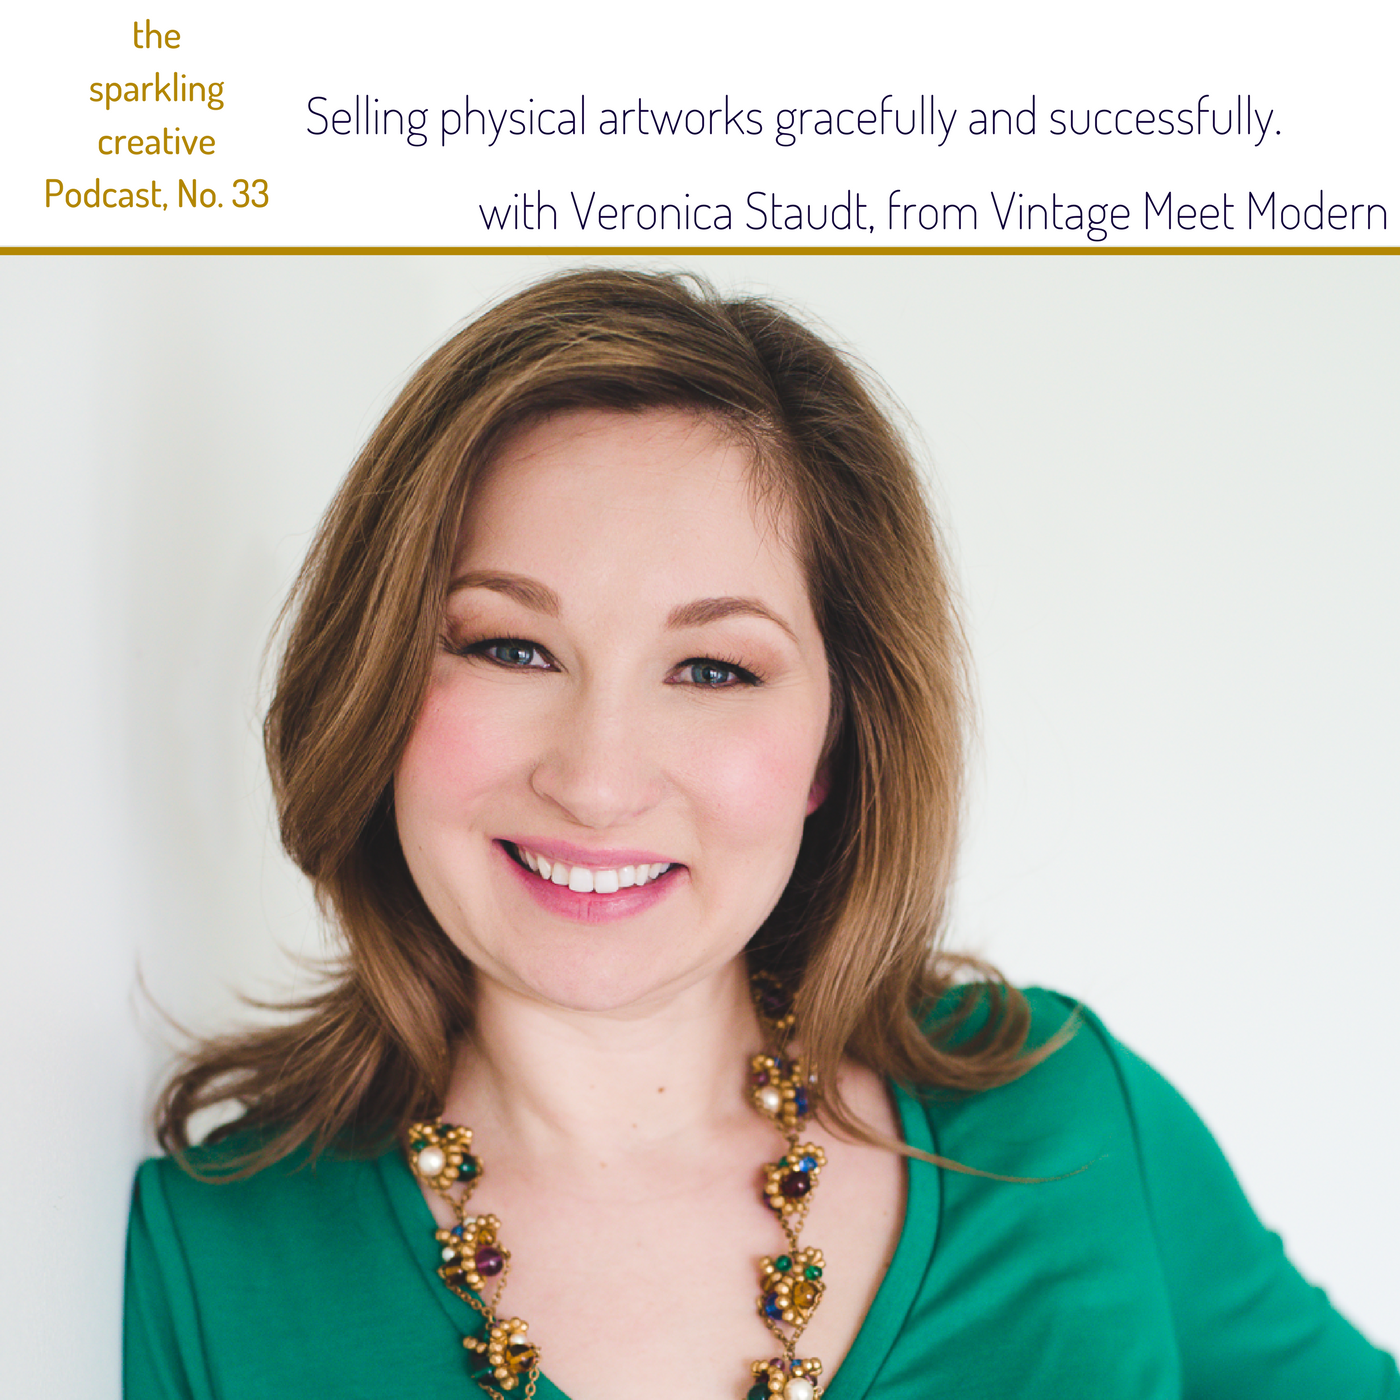 Artwork for Episode 33: Selling physical artworks gracefully and successfully. With Veronica Staudt